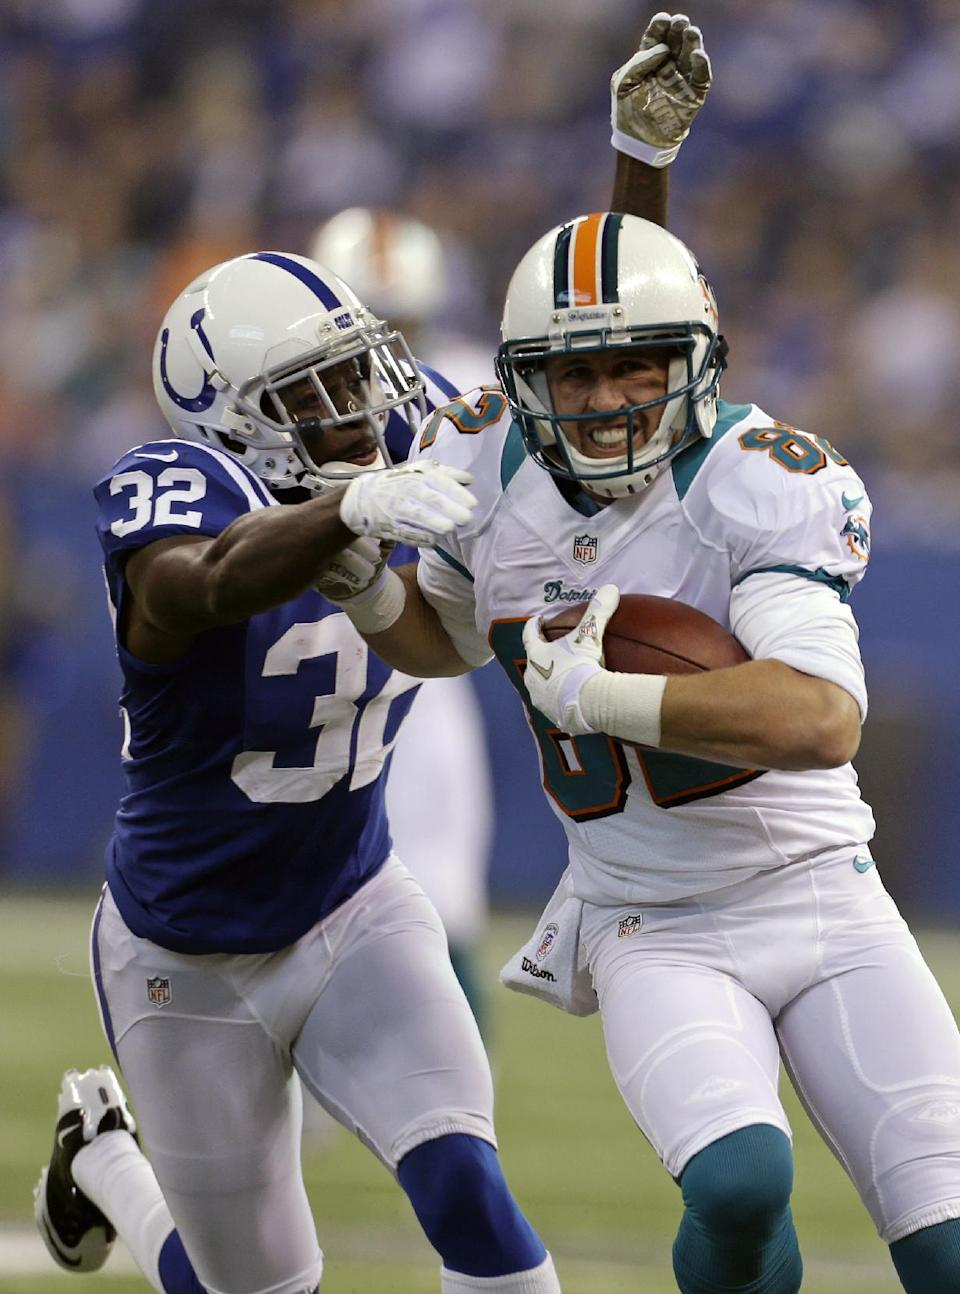 Miami Dolphins wide receiver Brian Hartline, right, tries to break the tackle of Indianapolis Colts cornerback Cassius Vaughn during the first half of an NFL football game in Indianapolis, Sunday, Nov. 4, 2012. (AP Photo/Darron Cummings)